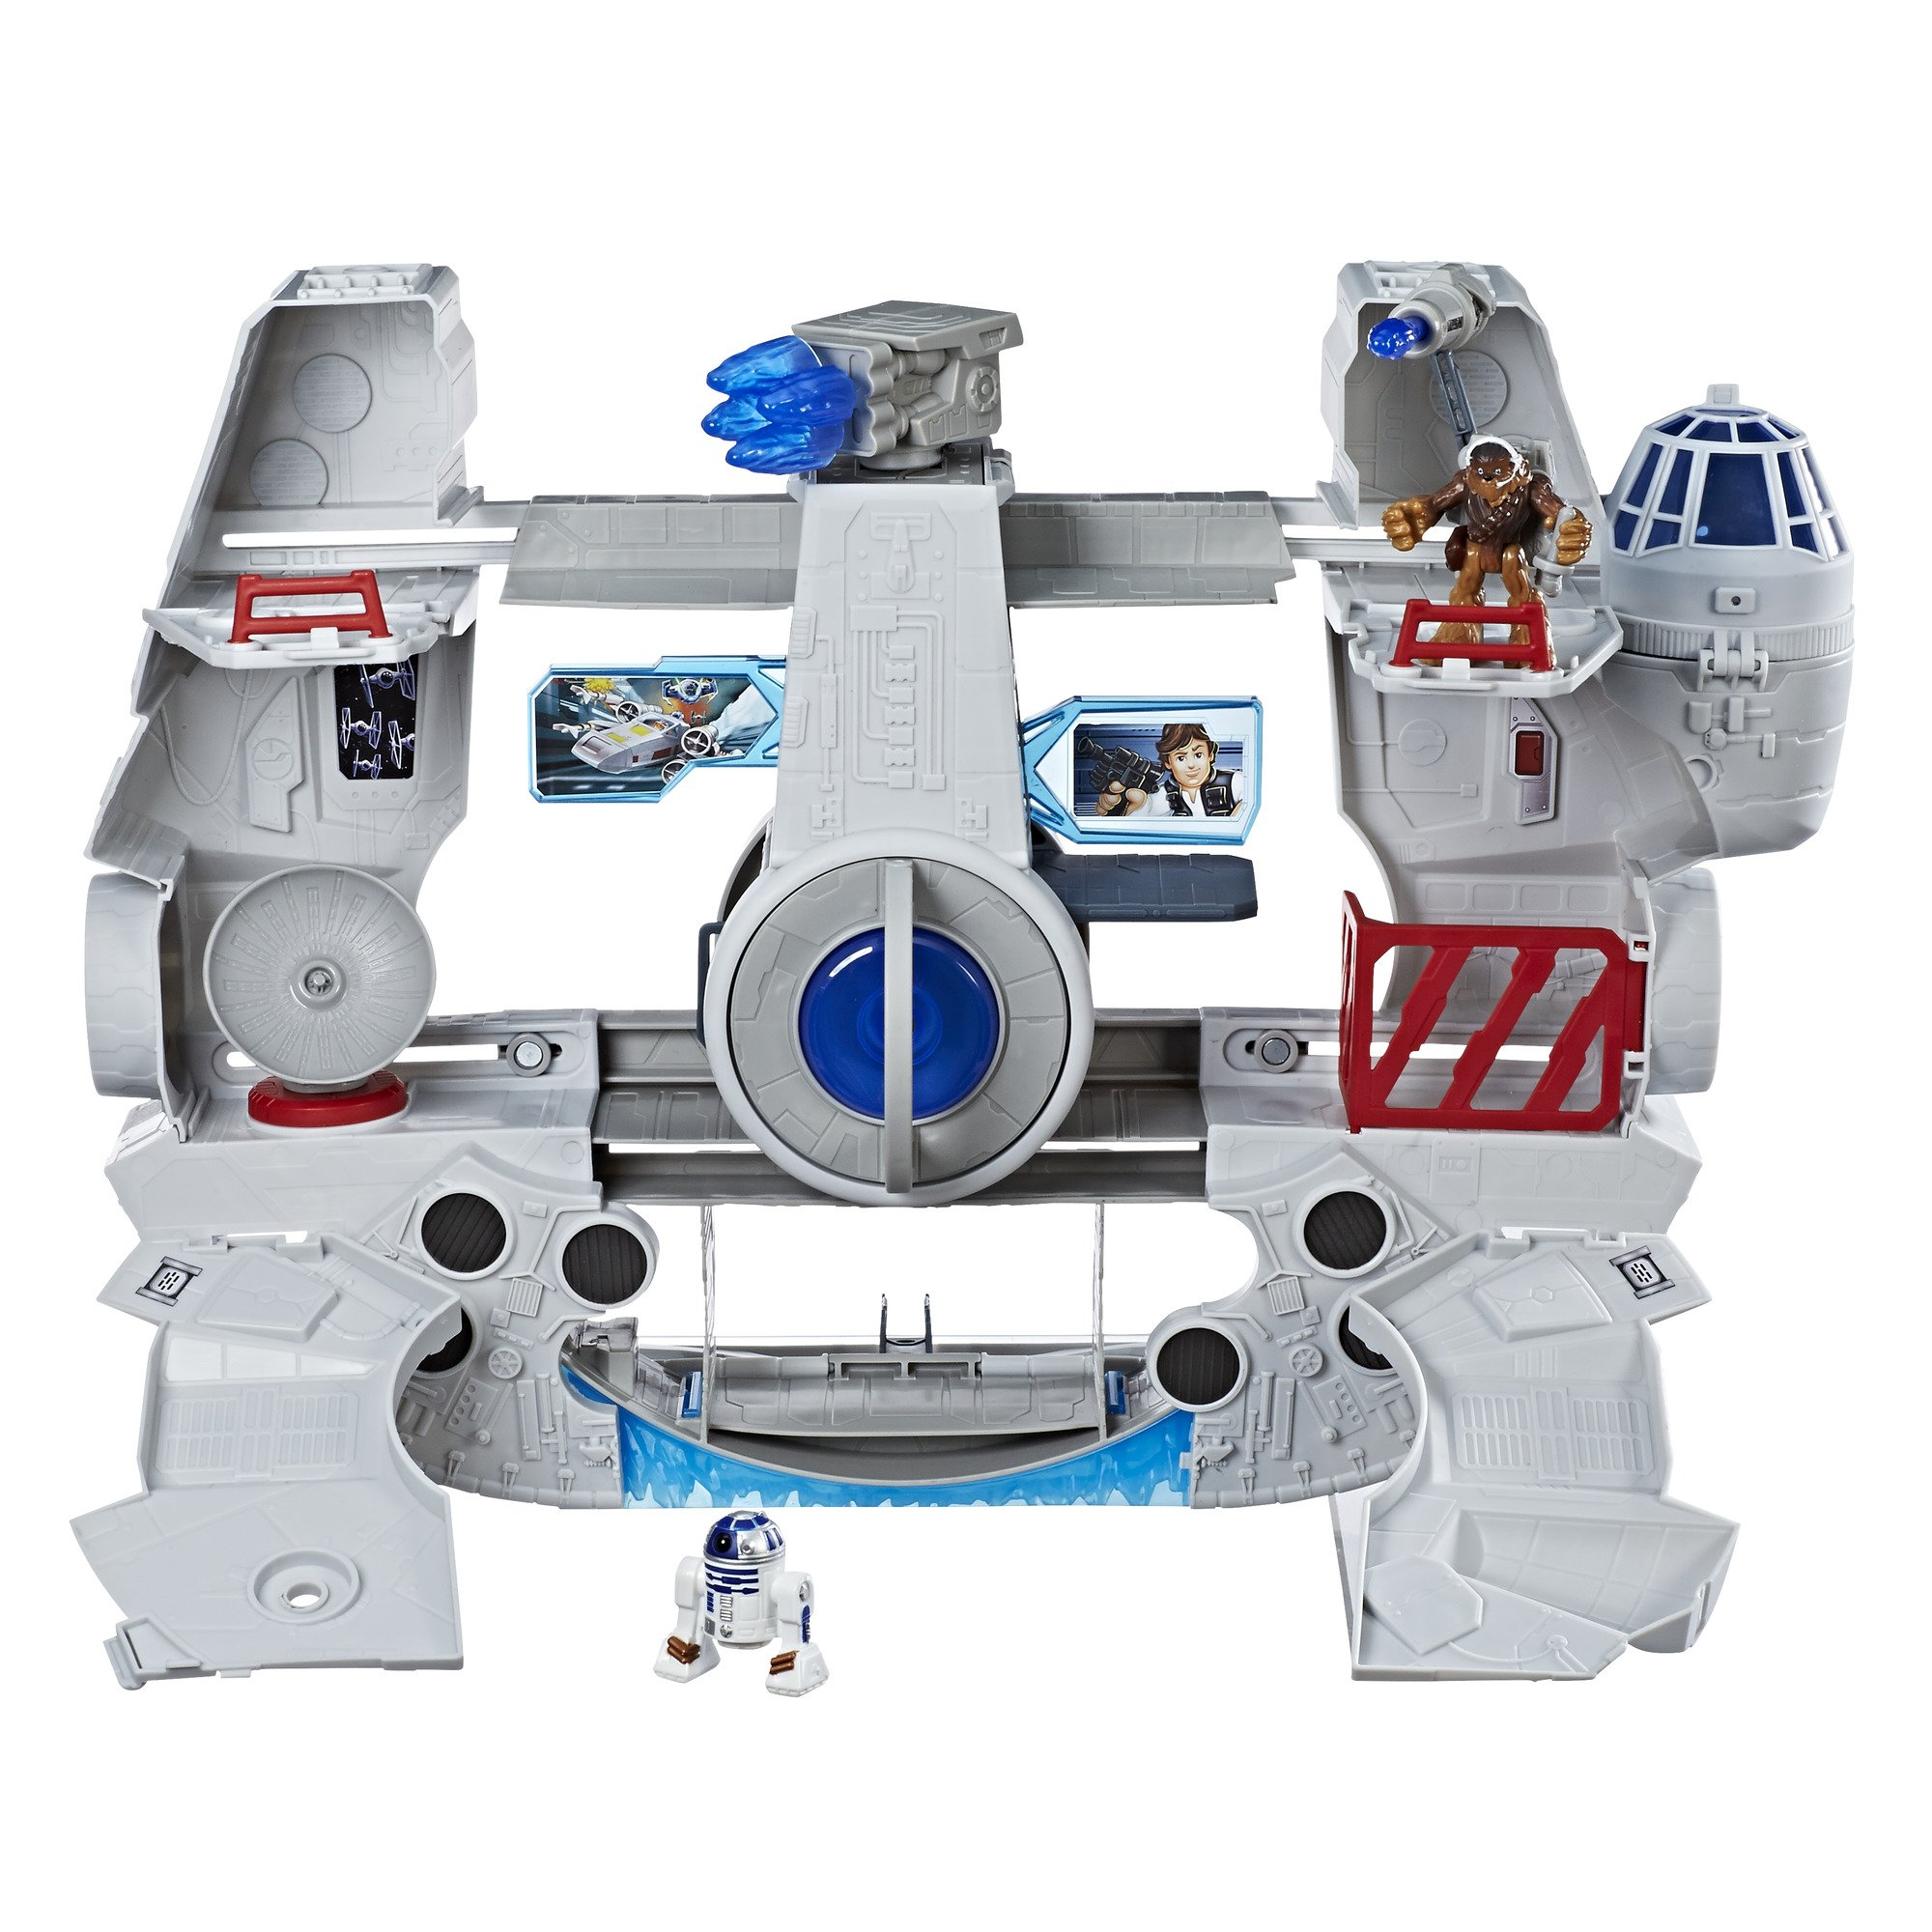 Star Wars Galactic Heroes 2-In-1 Millennium Falcon Vehicle Playset, Chewbacca, R2-D2 2.5-Inch Action Figures, Lights and Sounds, Toys for Kids Ages 3 and Up